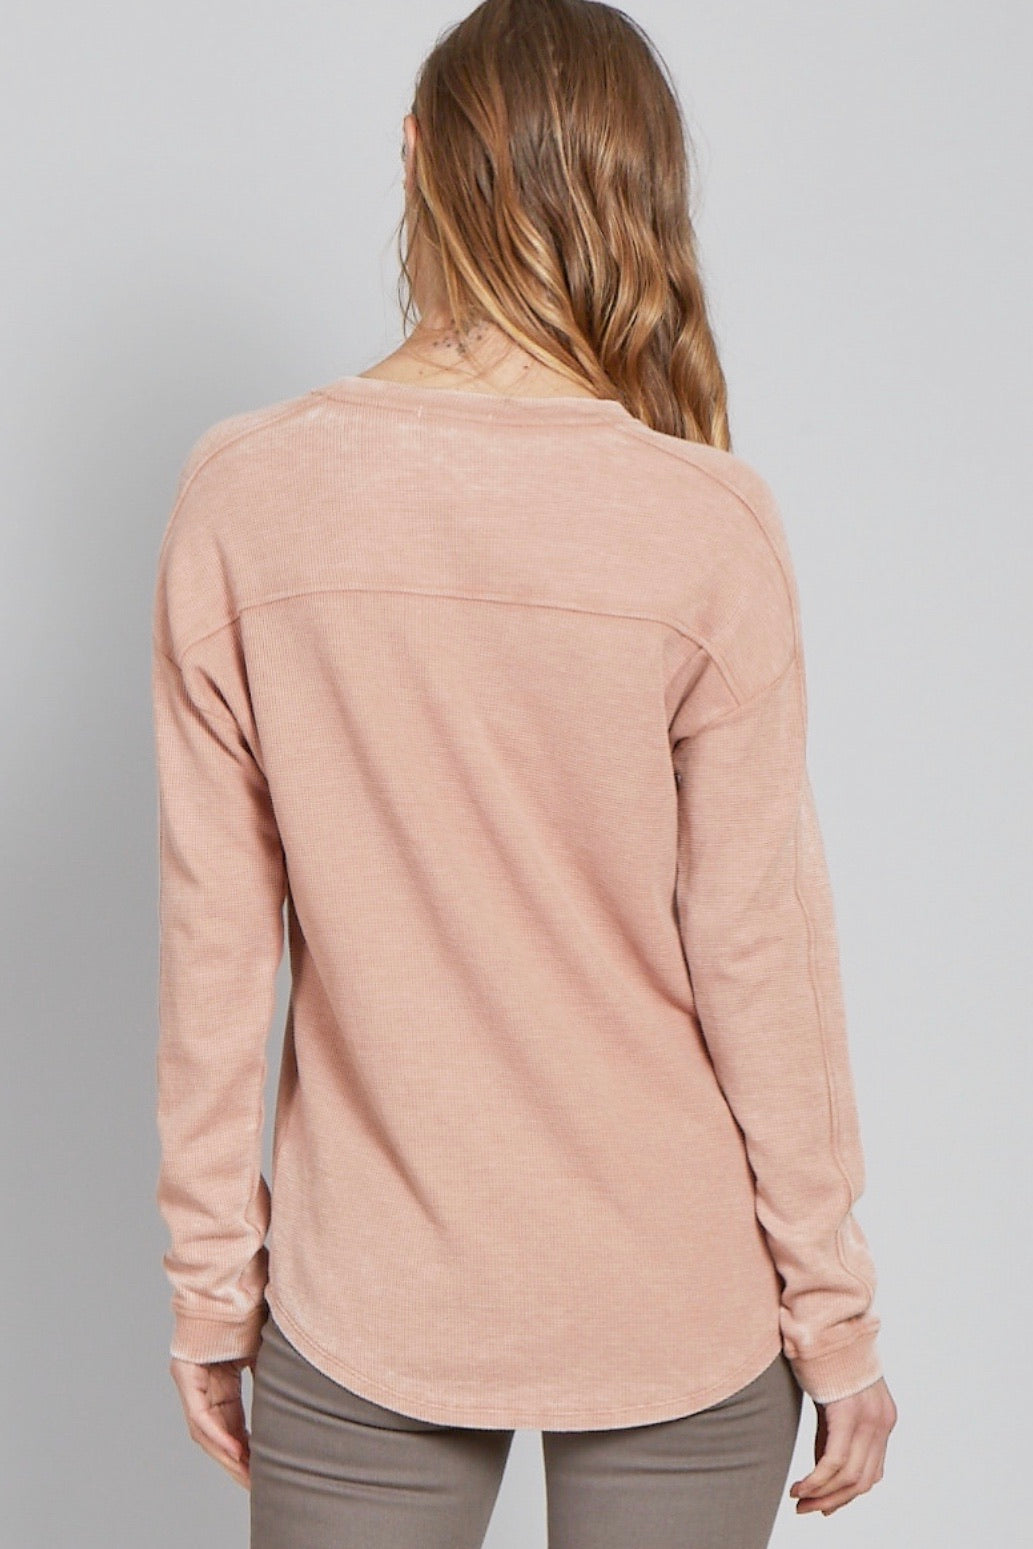 NALA LONG SLEEVE THERMAL TOP